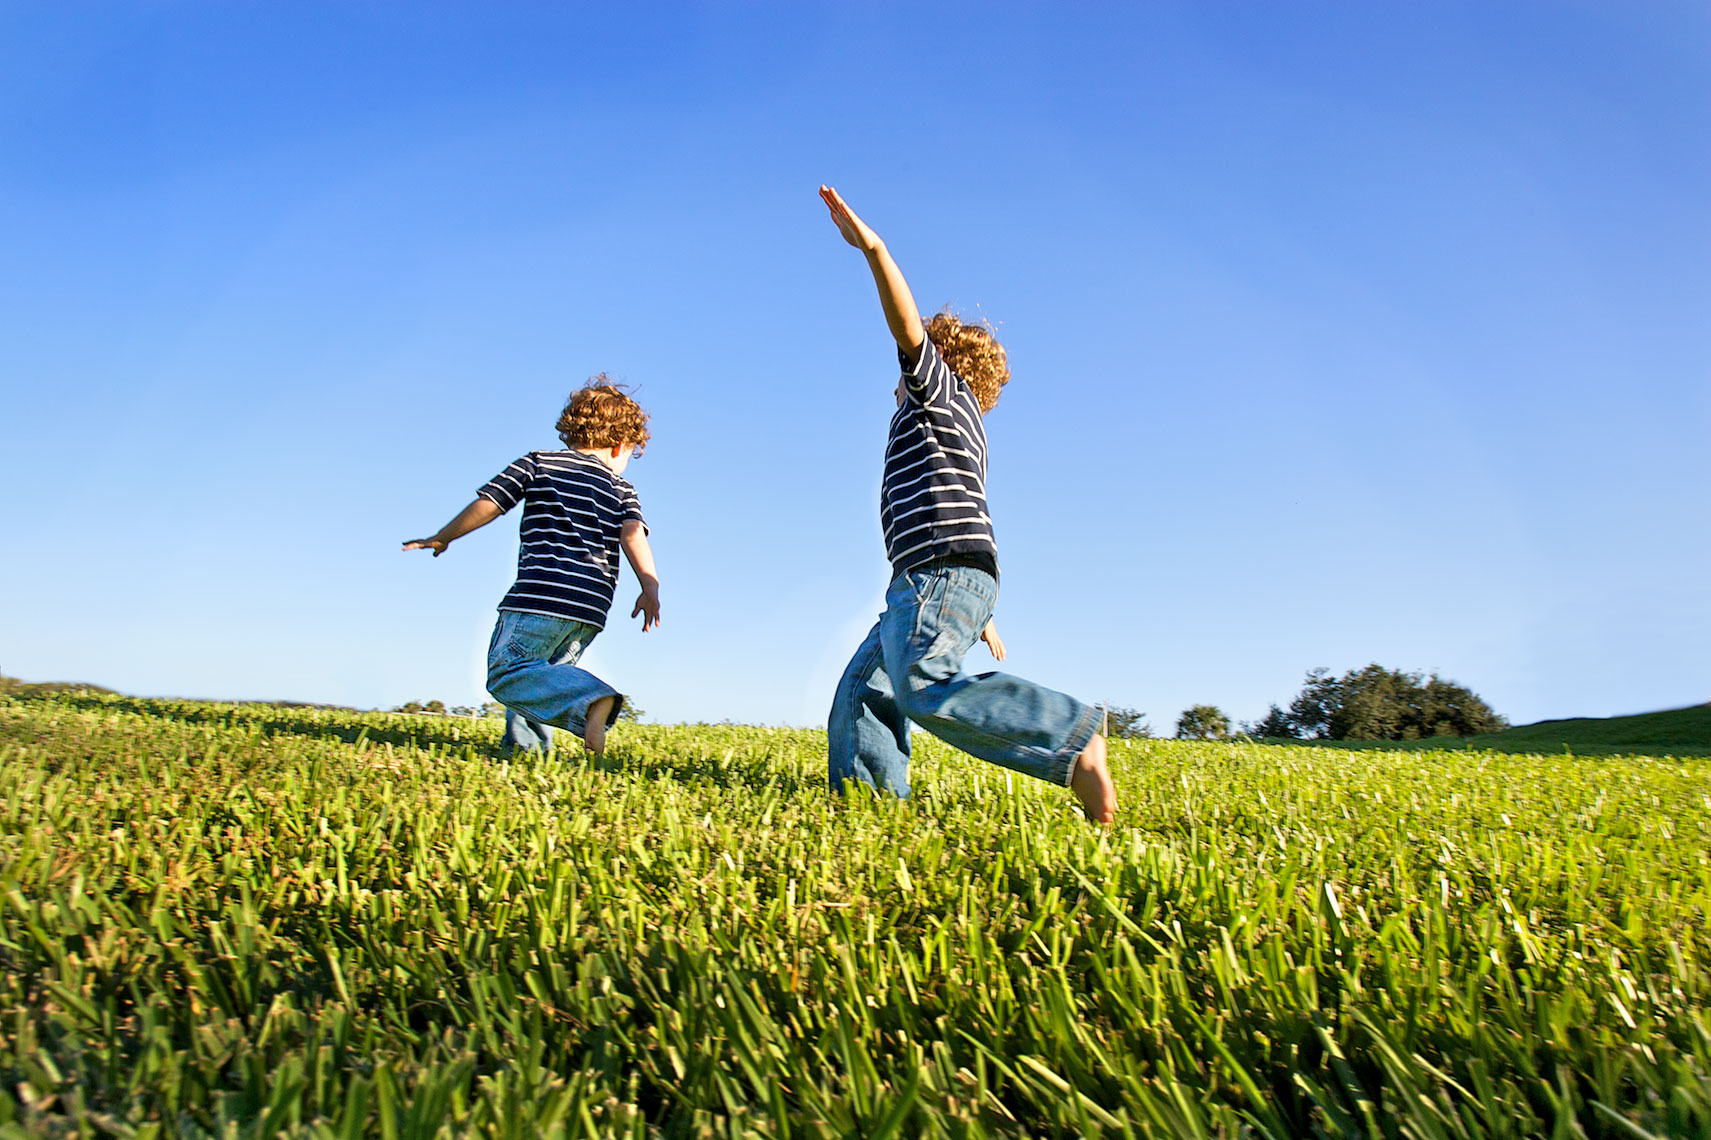 young boys running, playing airplane in field_Y0U4598_Robert-Holland.jpg